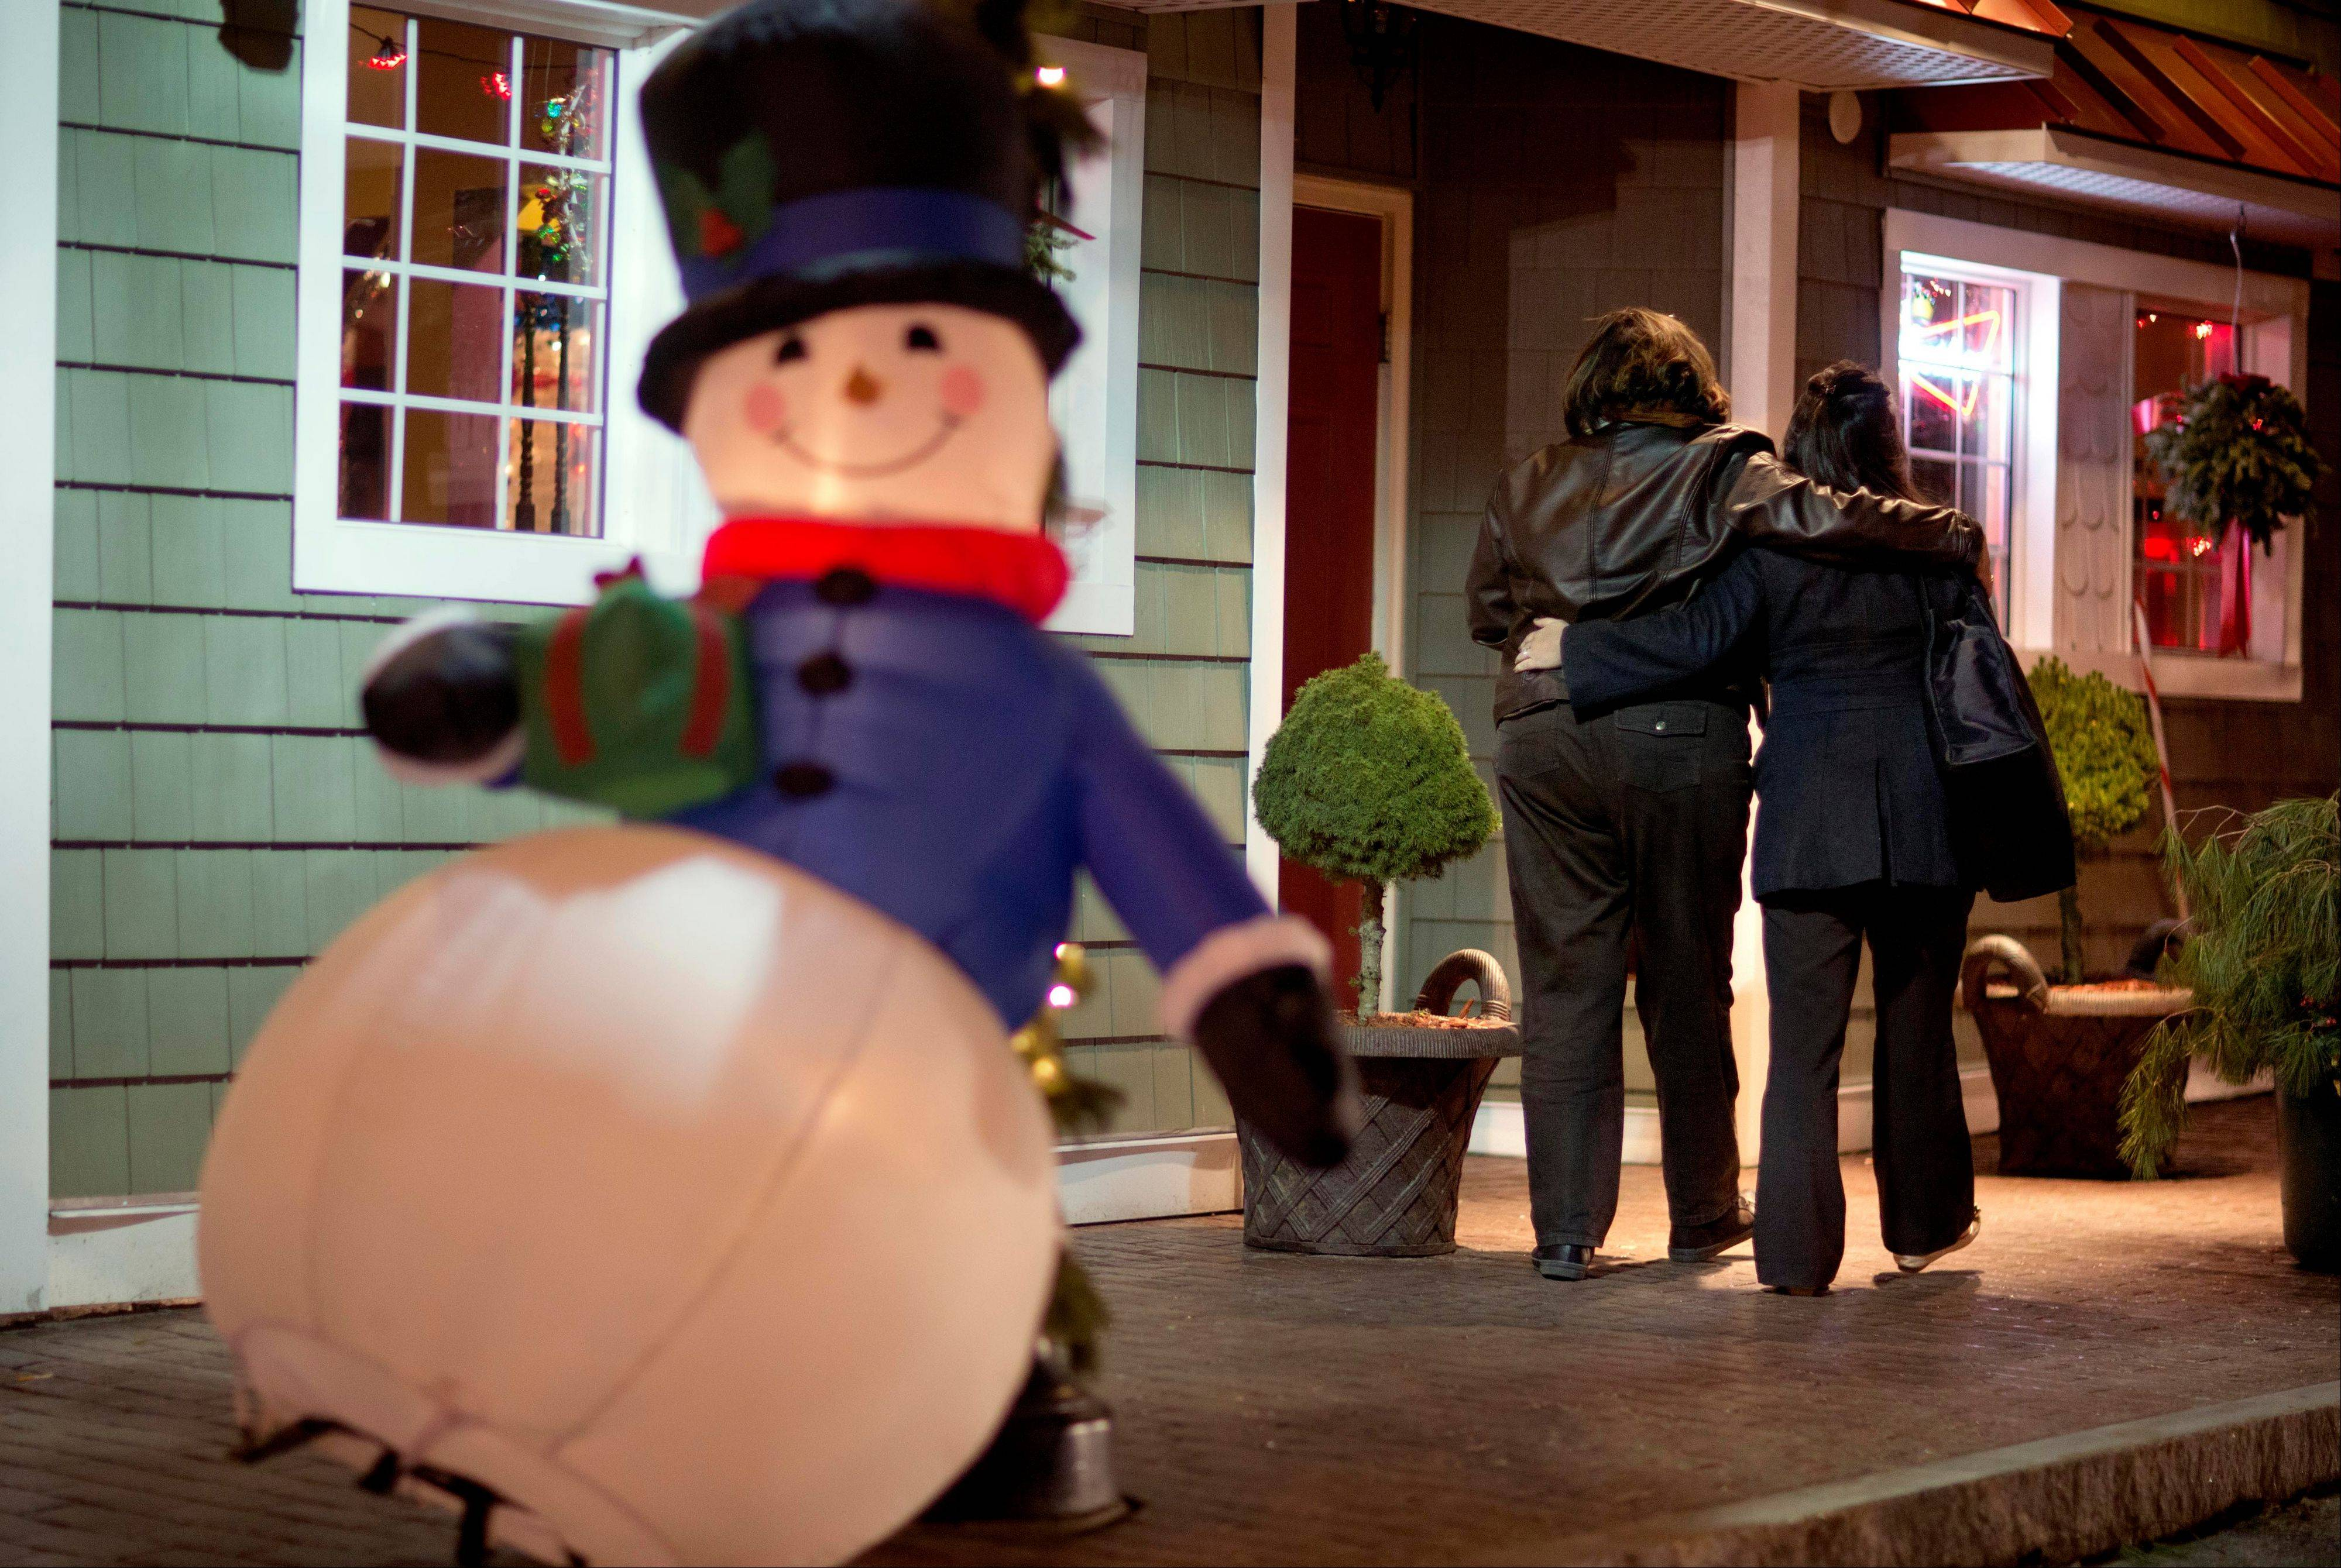 In this Dec. 19, 2012 file photo, mourners walk past a Frosty the Snowman Christmas decoration after visiting a memorial for the Sand